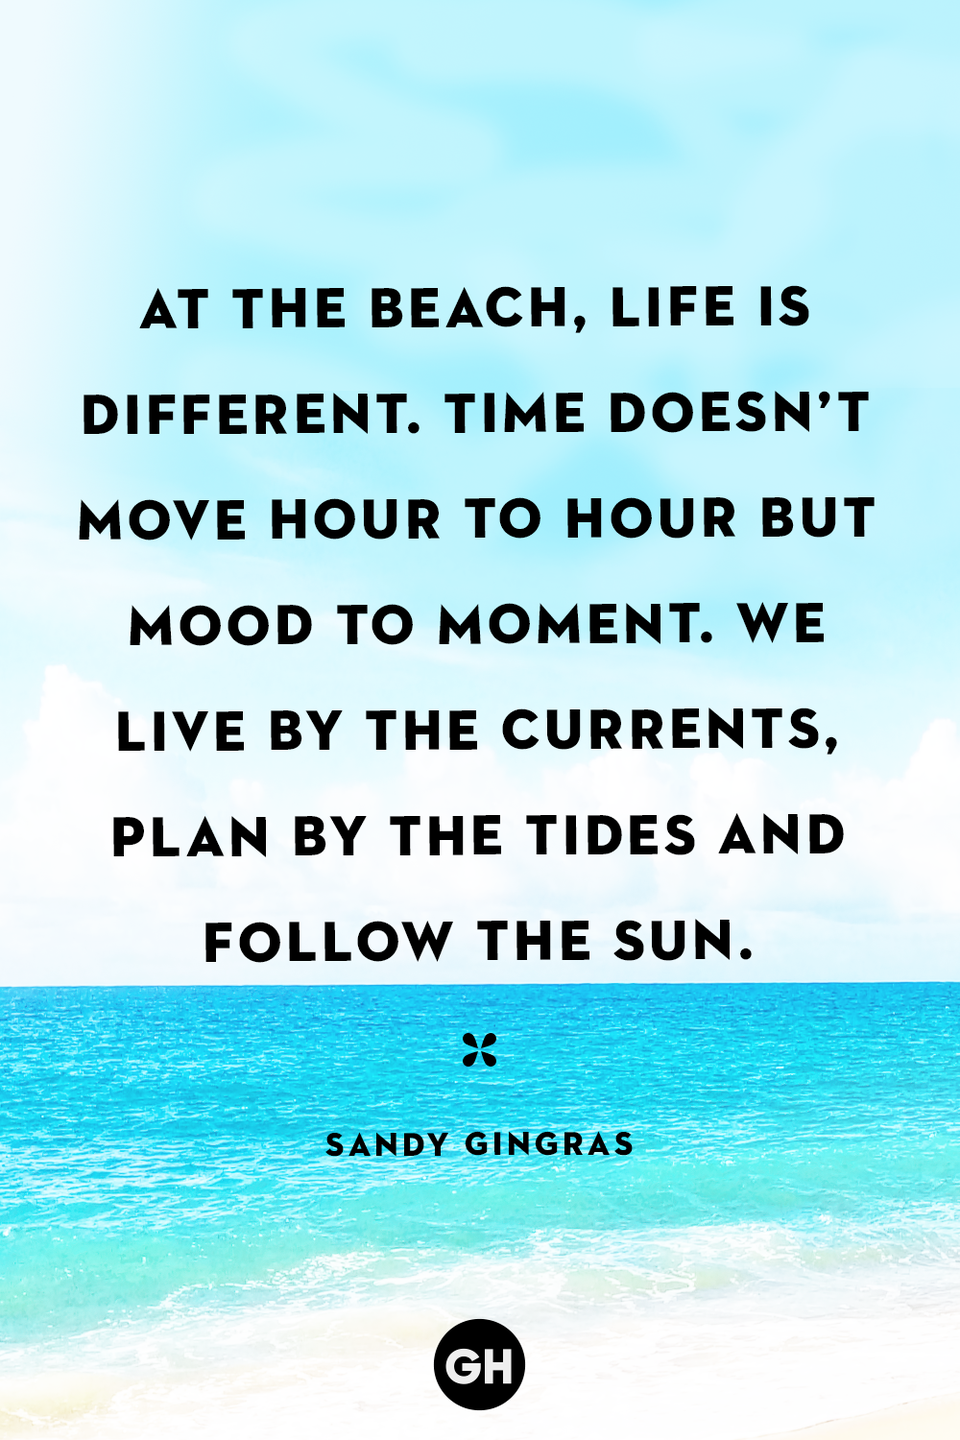 <p>At the beach, life is different. Time doesn't move hour to hour but mood to moment. We live by the currents, plan by the tides and follow the sun.</p>